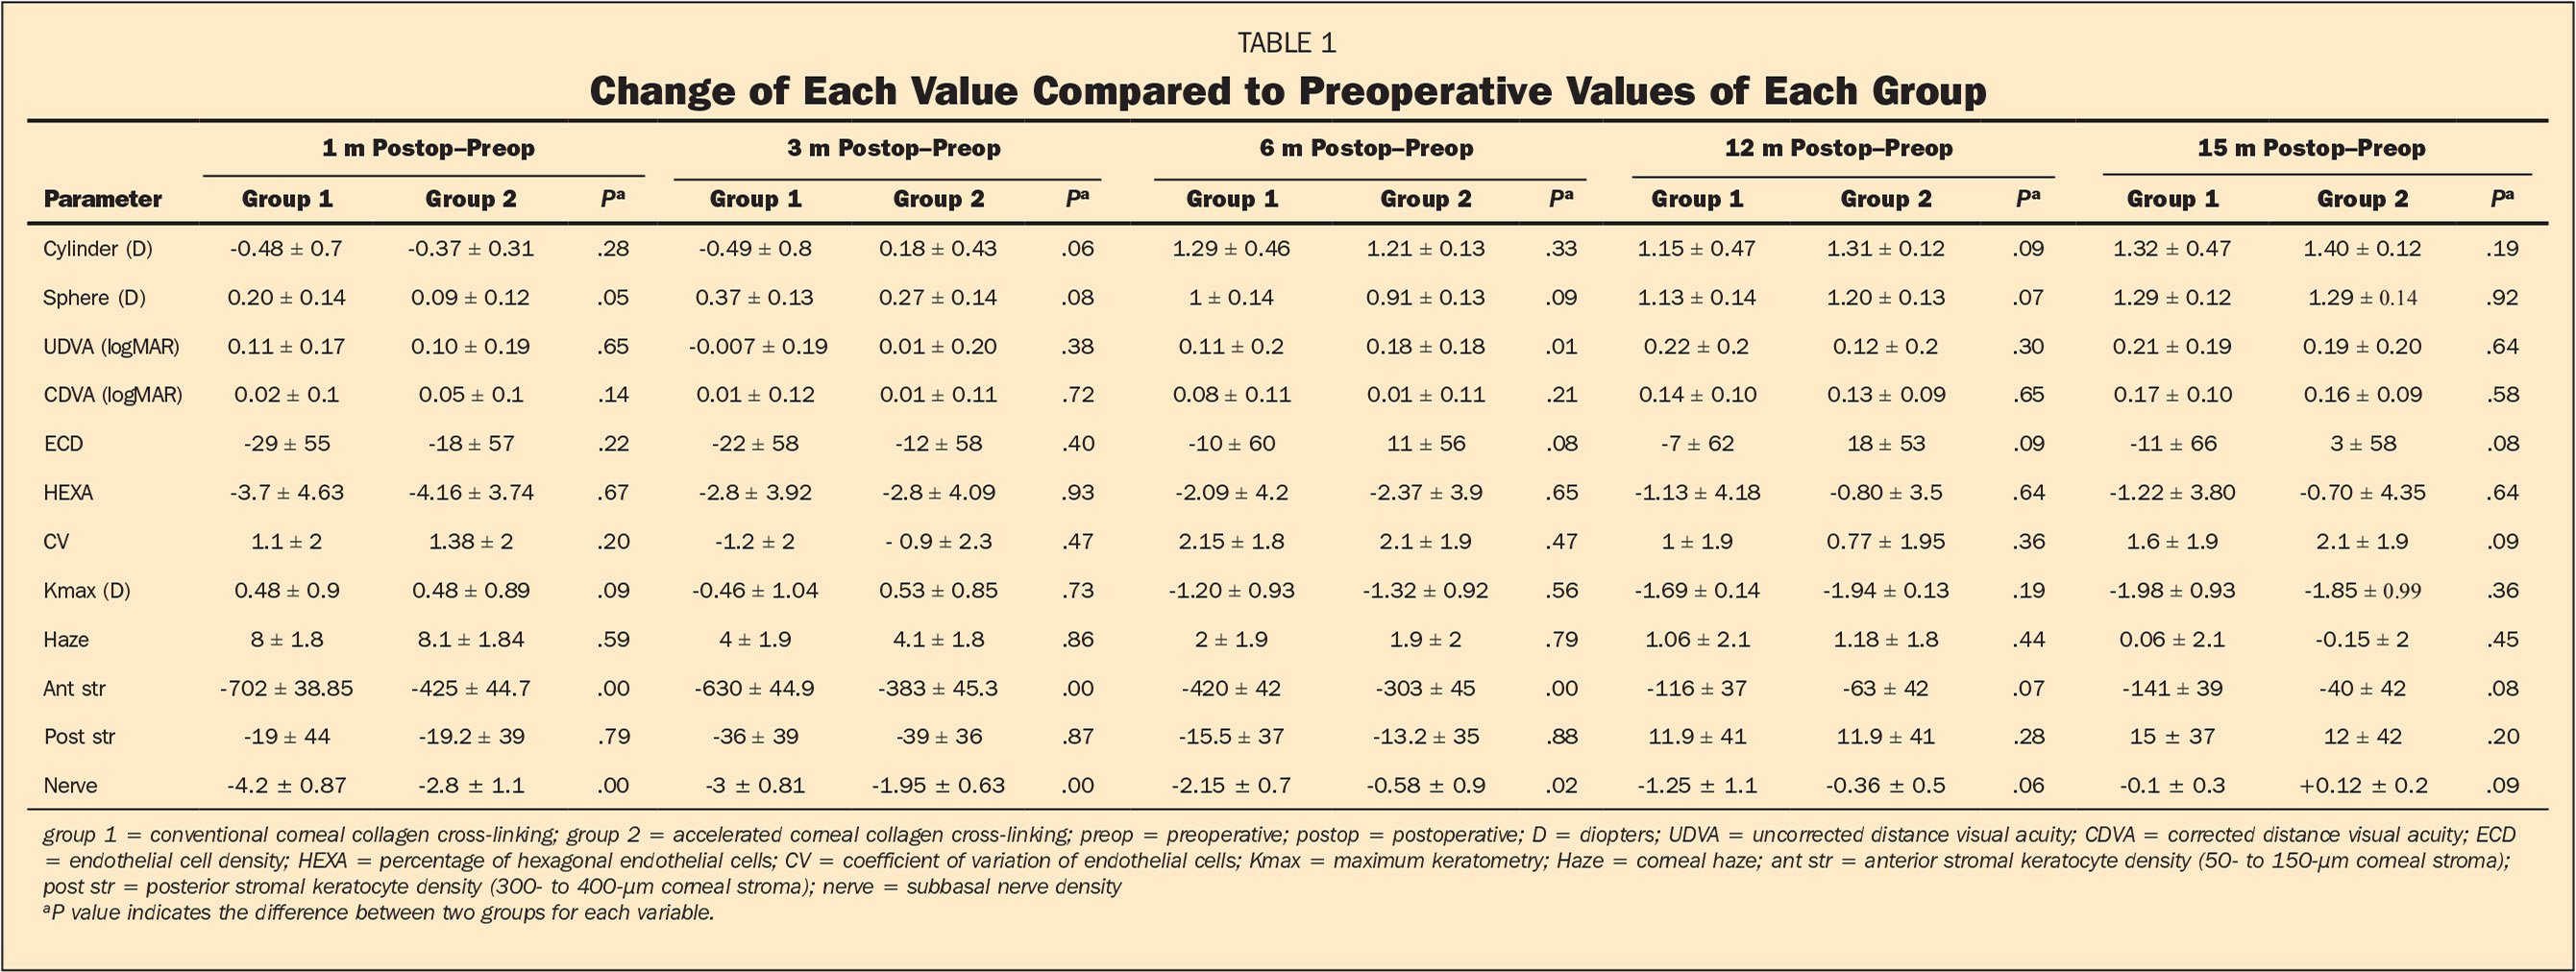 Change of Each Value Compared to Preoperative Values of Each Group